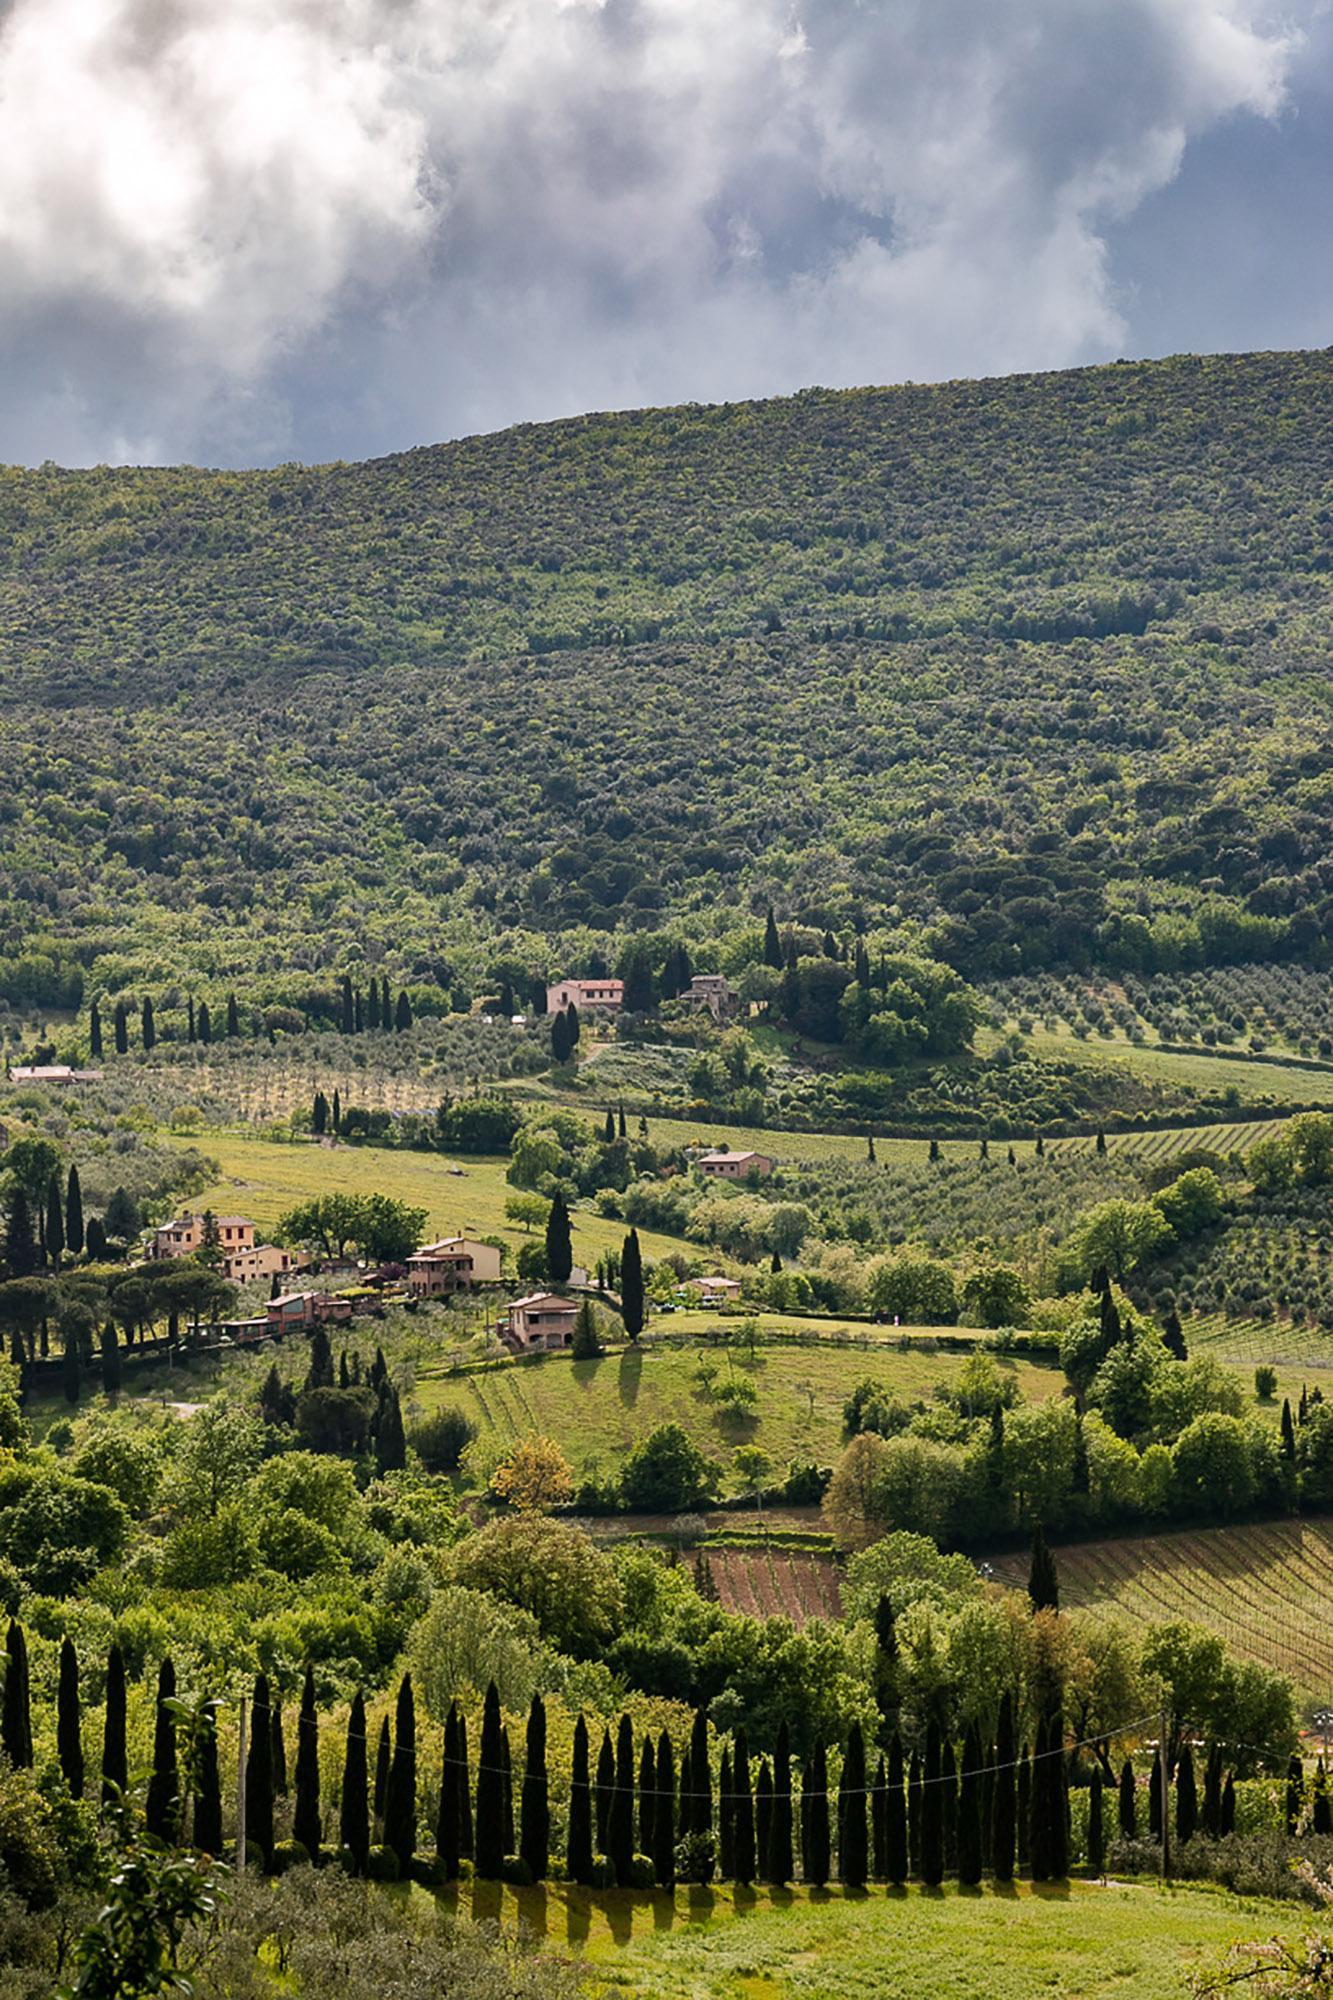 Wine yard, olive oil trees and cypress in San Gimignano countryside. This is simply Tuscany. - © Tina Fasulo / Share your Sangi